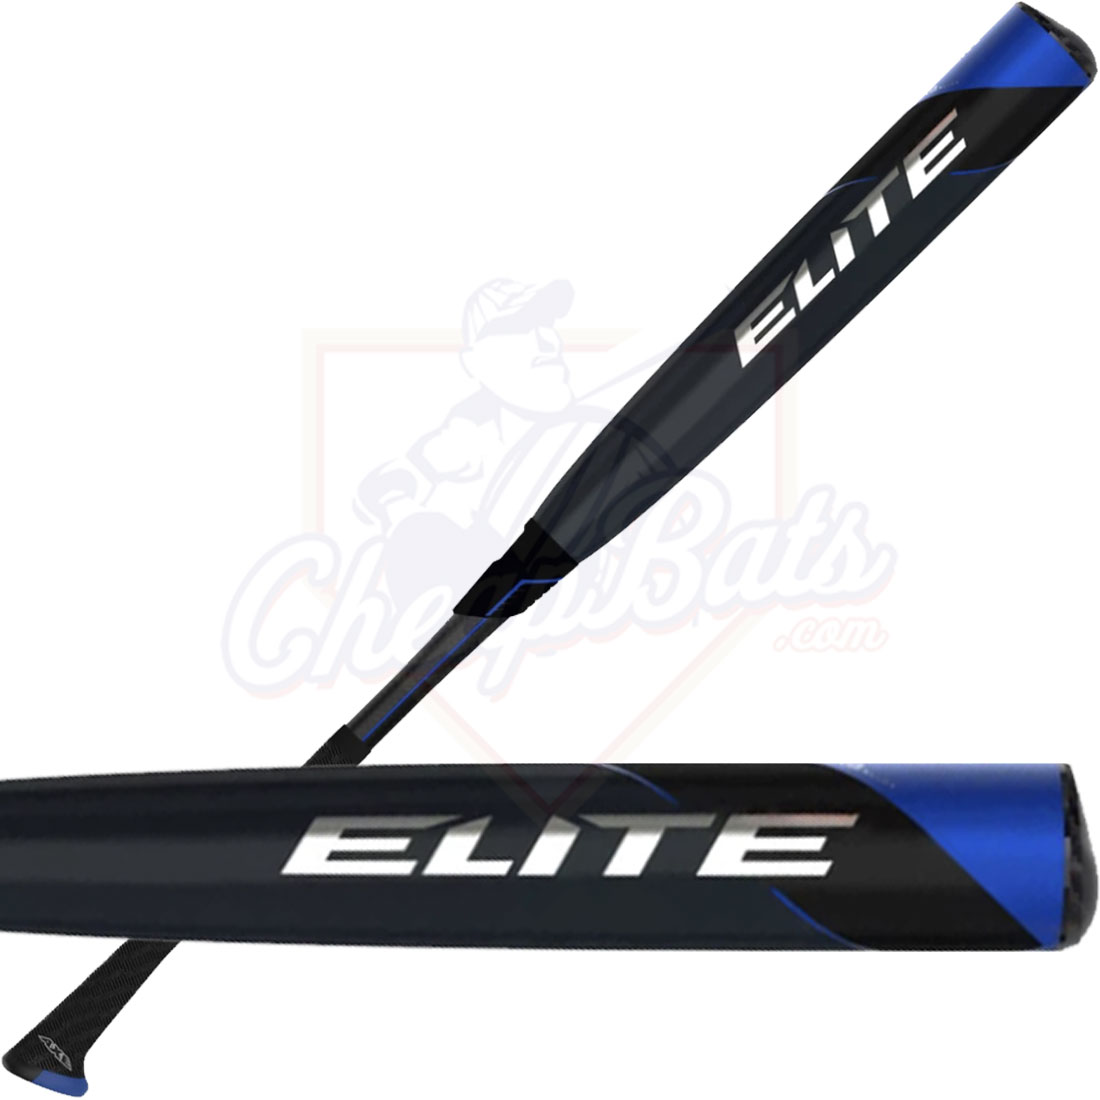 2021 Axe Elite PWR Hybrid BBCOR Baseball Bat -3oz L130J-PWR